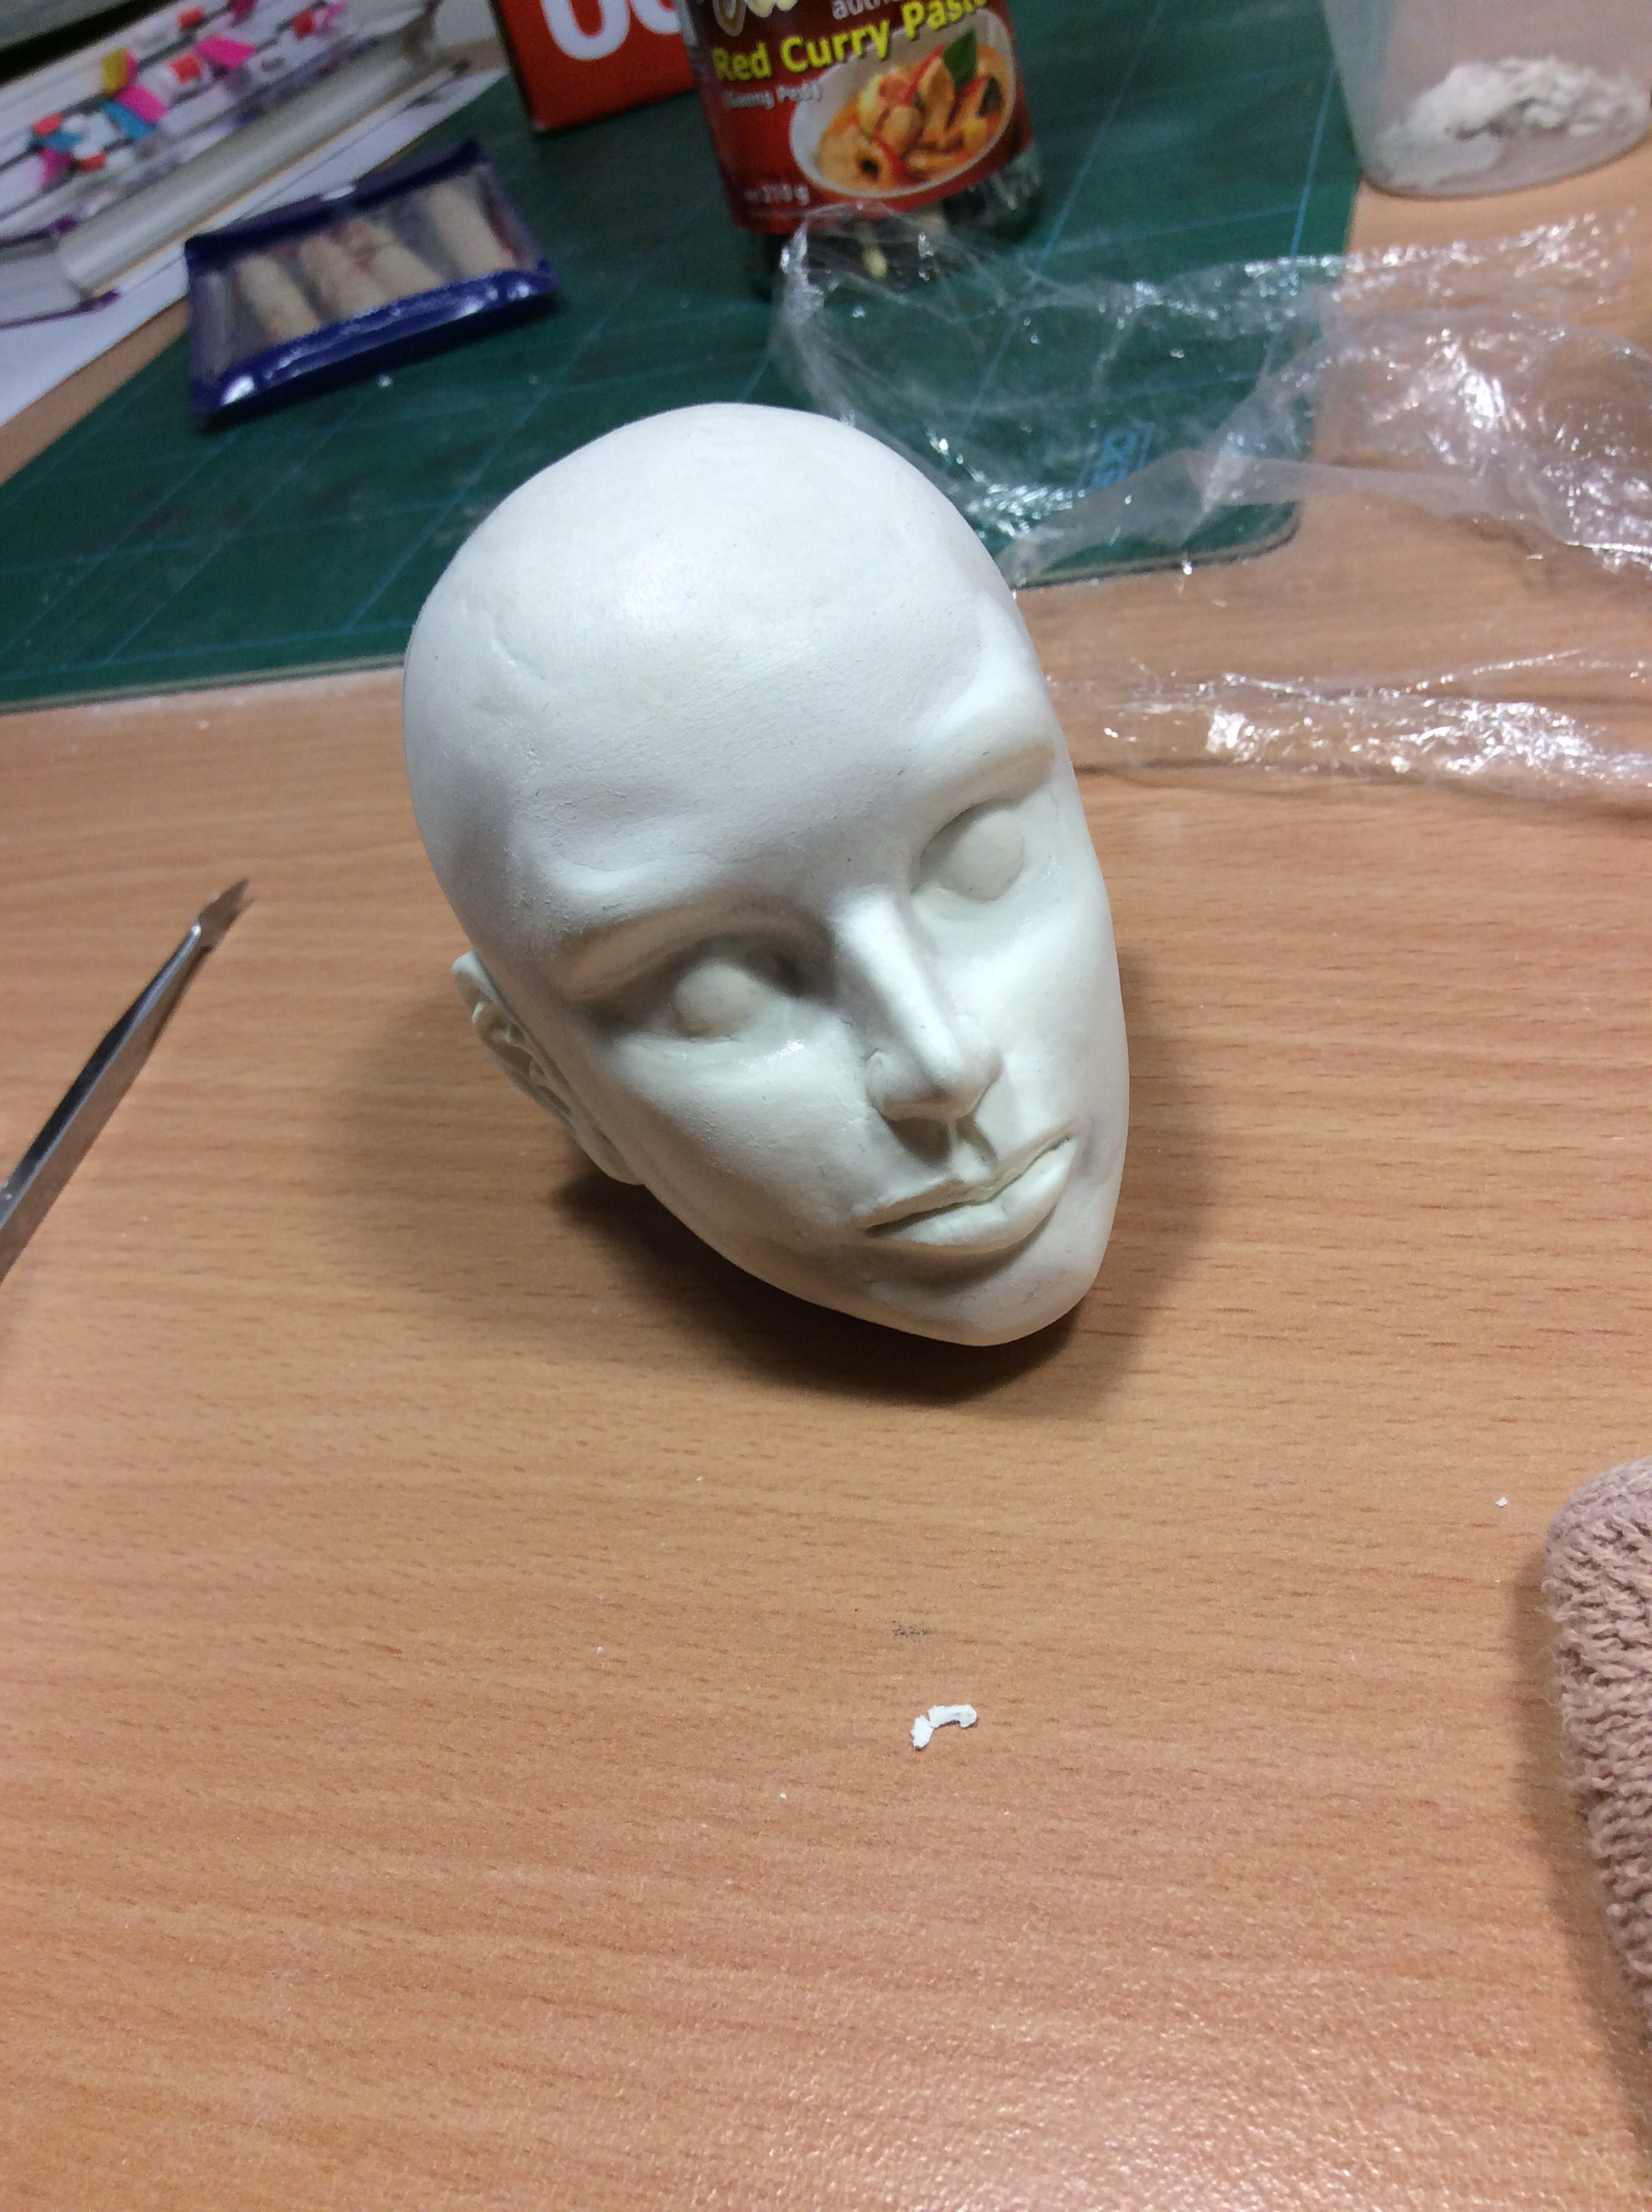 jemse---my-first-doll-head-making-progress-diary-part-3_32263358202_o